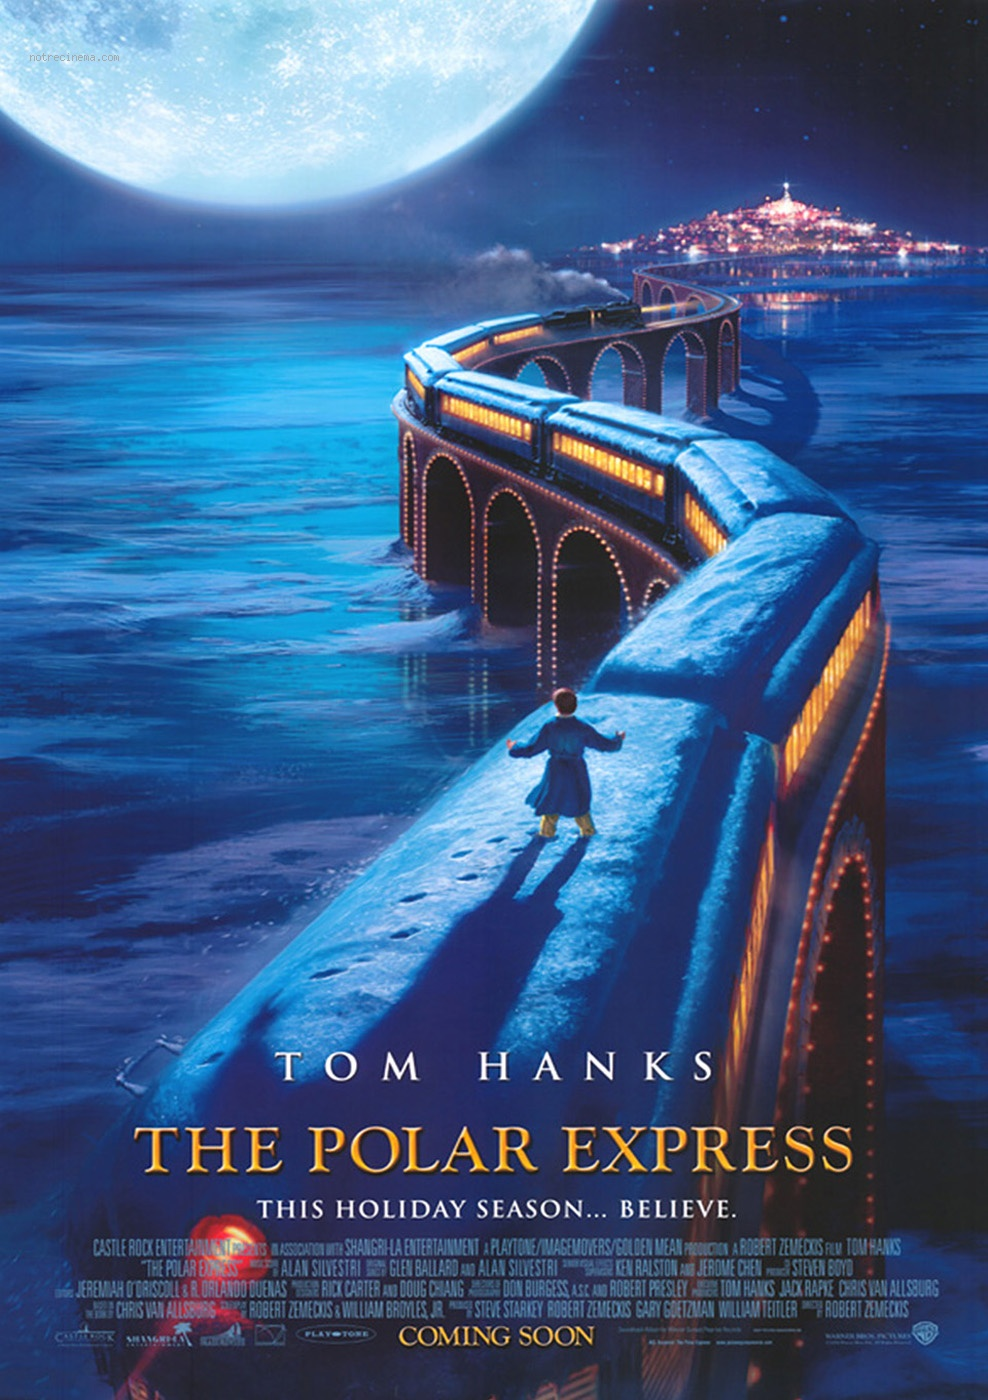 le-pole-express-poster_396509_4518